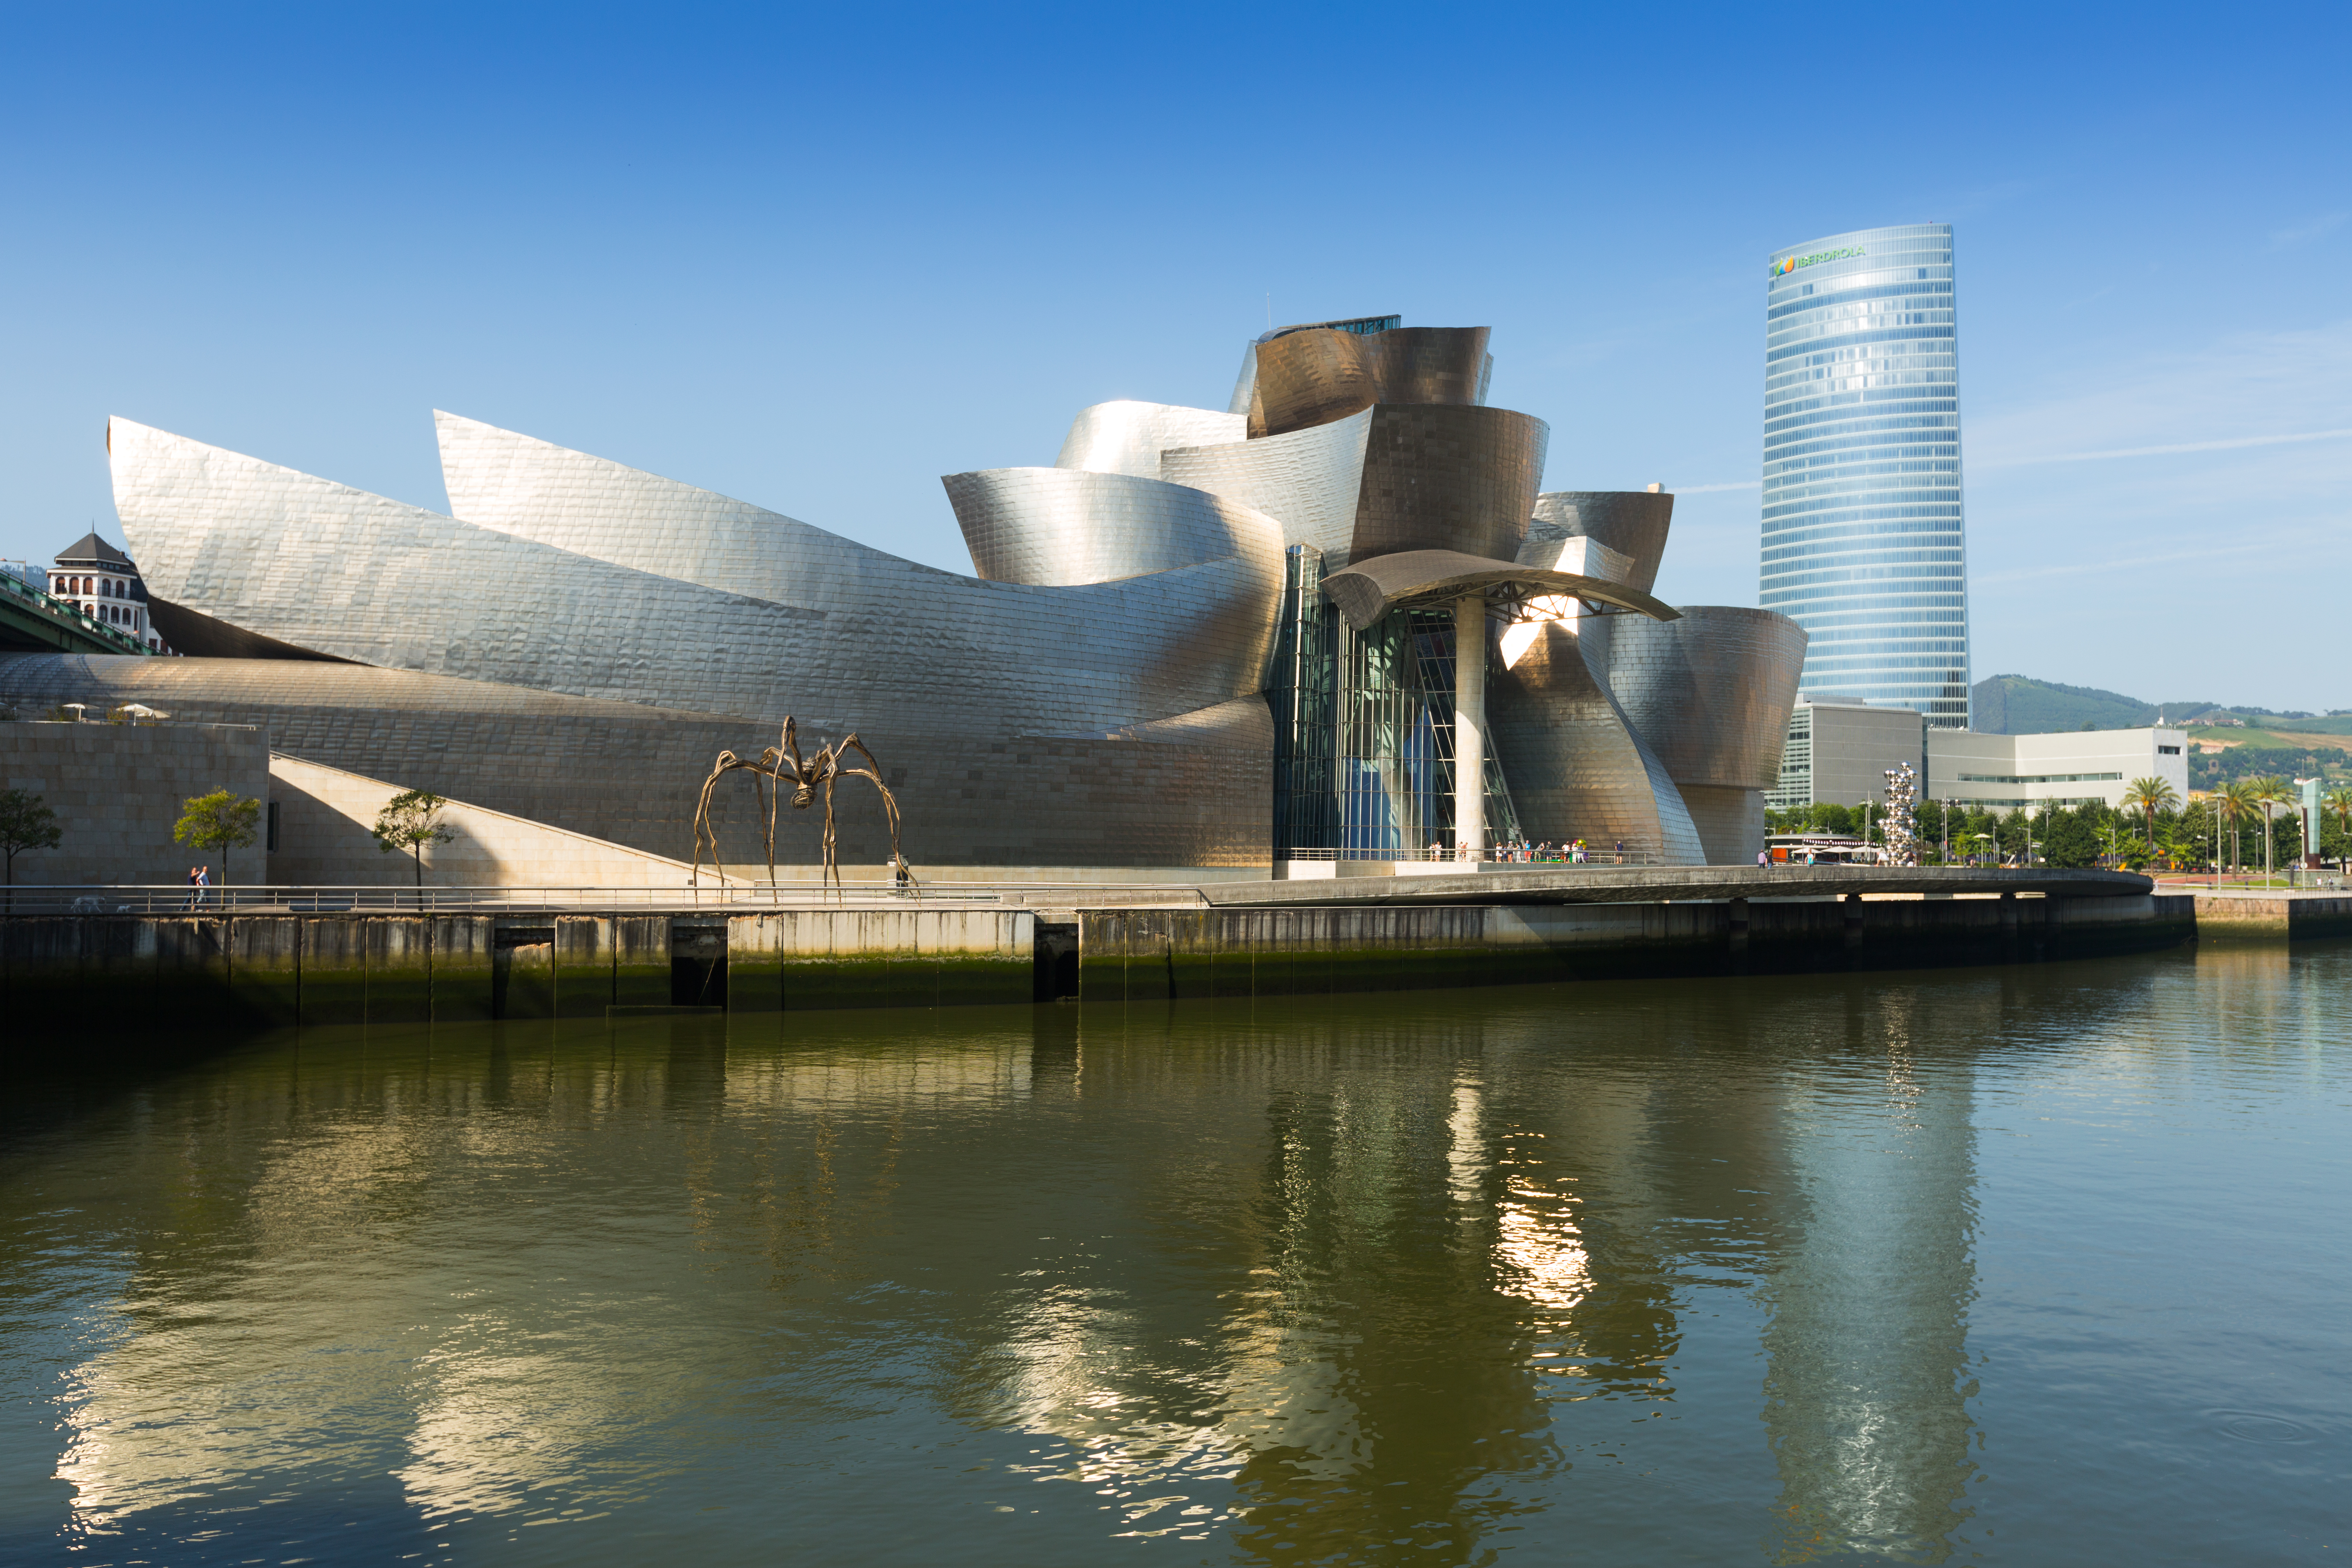 The Guggenheim Museum Bilbao is a museum of modern and contemporary art,  designed by Canadian-American architect Frank Gehry. Shutterstock